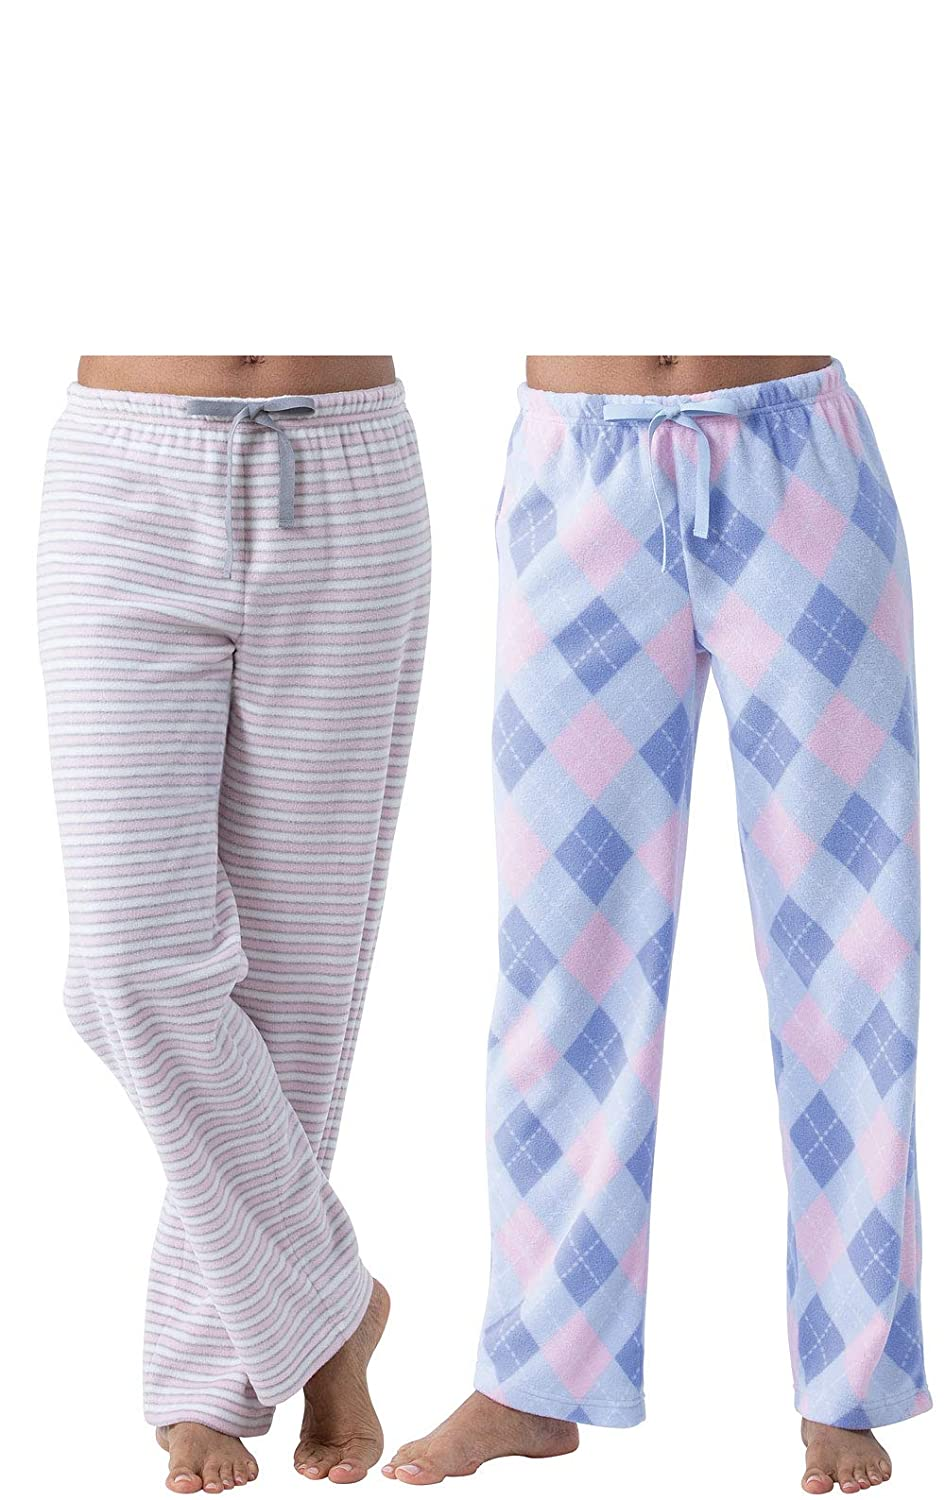 498a43e6f0e3 Addison Meadow Womens Pajama Pants - Womens Fleece Pajama Pants